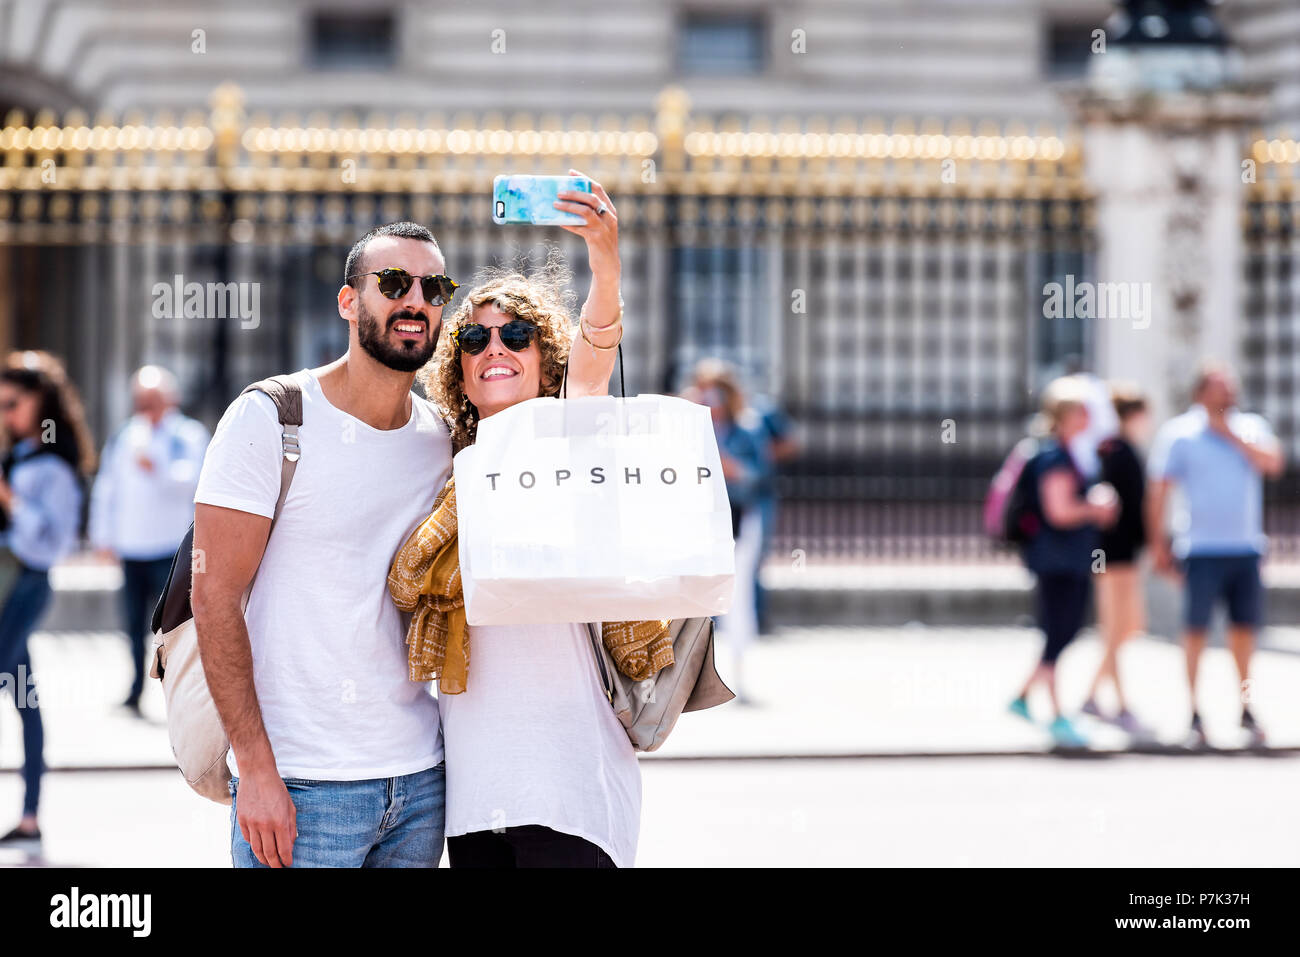 Londres, Royaume-Uni - Juin 21, 2018 : happy smiling couple standing prenant en selfies avant de l'or, le palais de Buckingham d'or libre de clôture, topsh Photo Stock